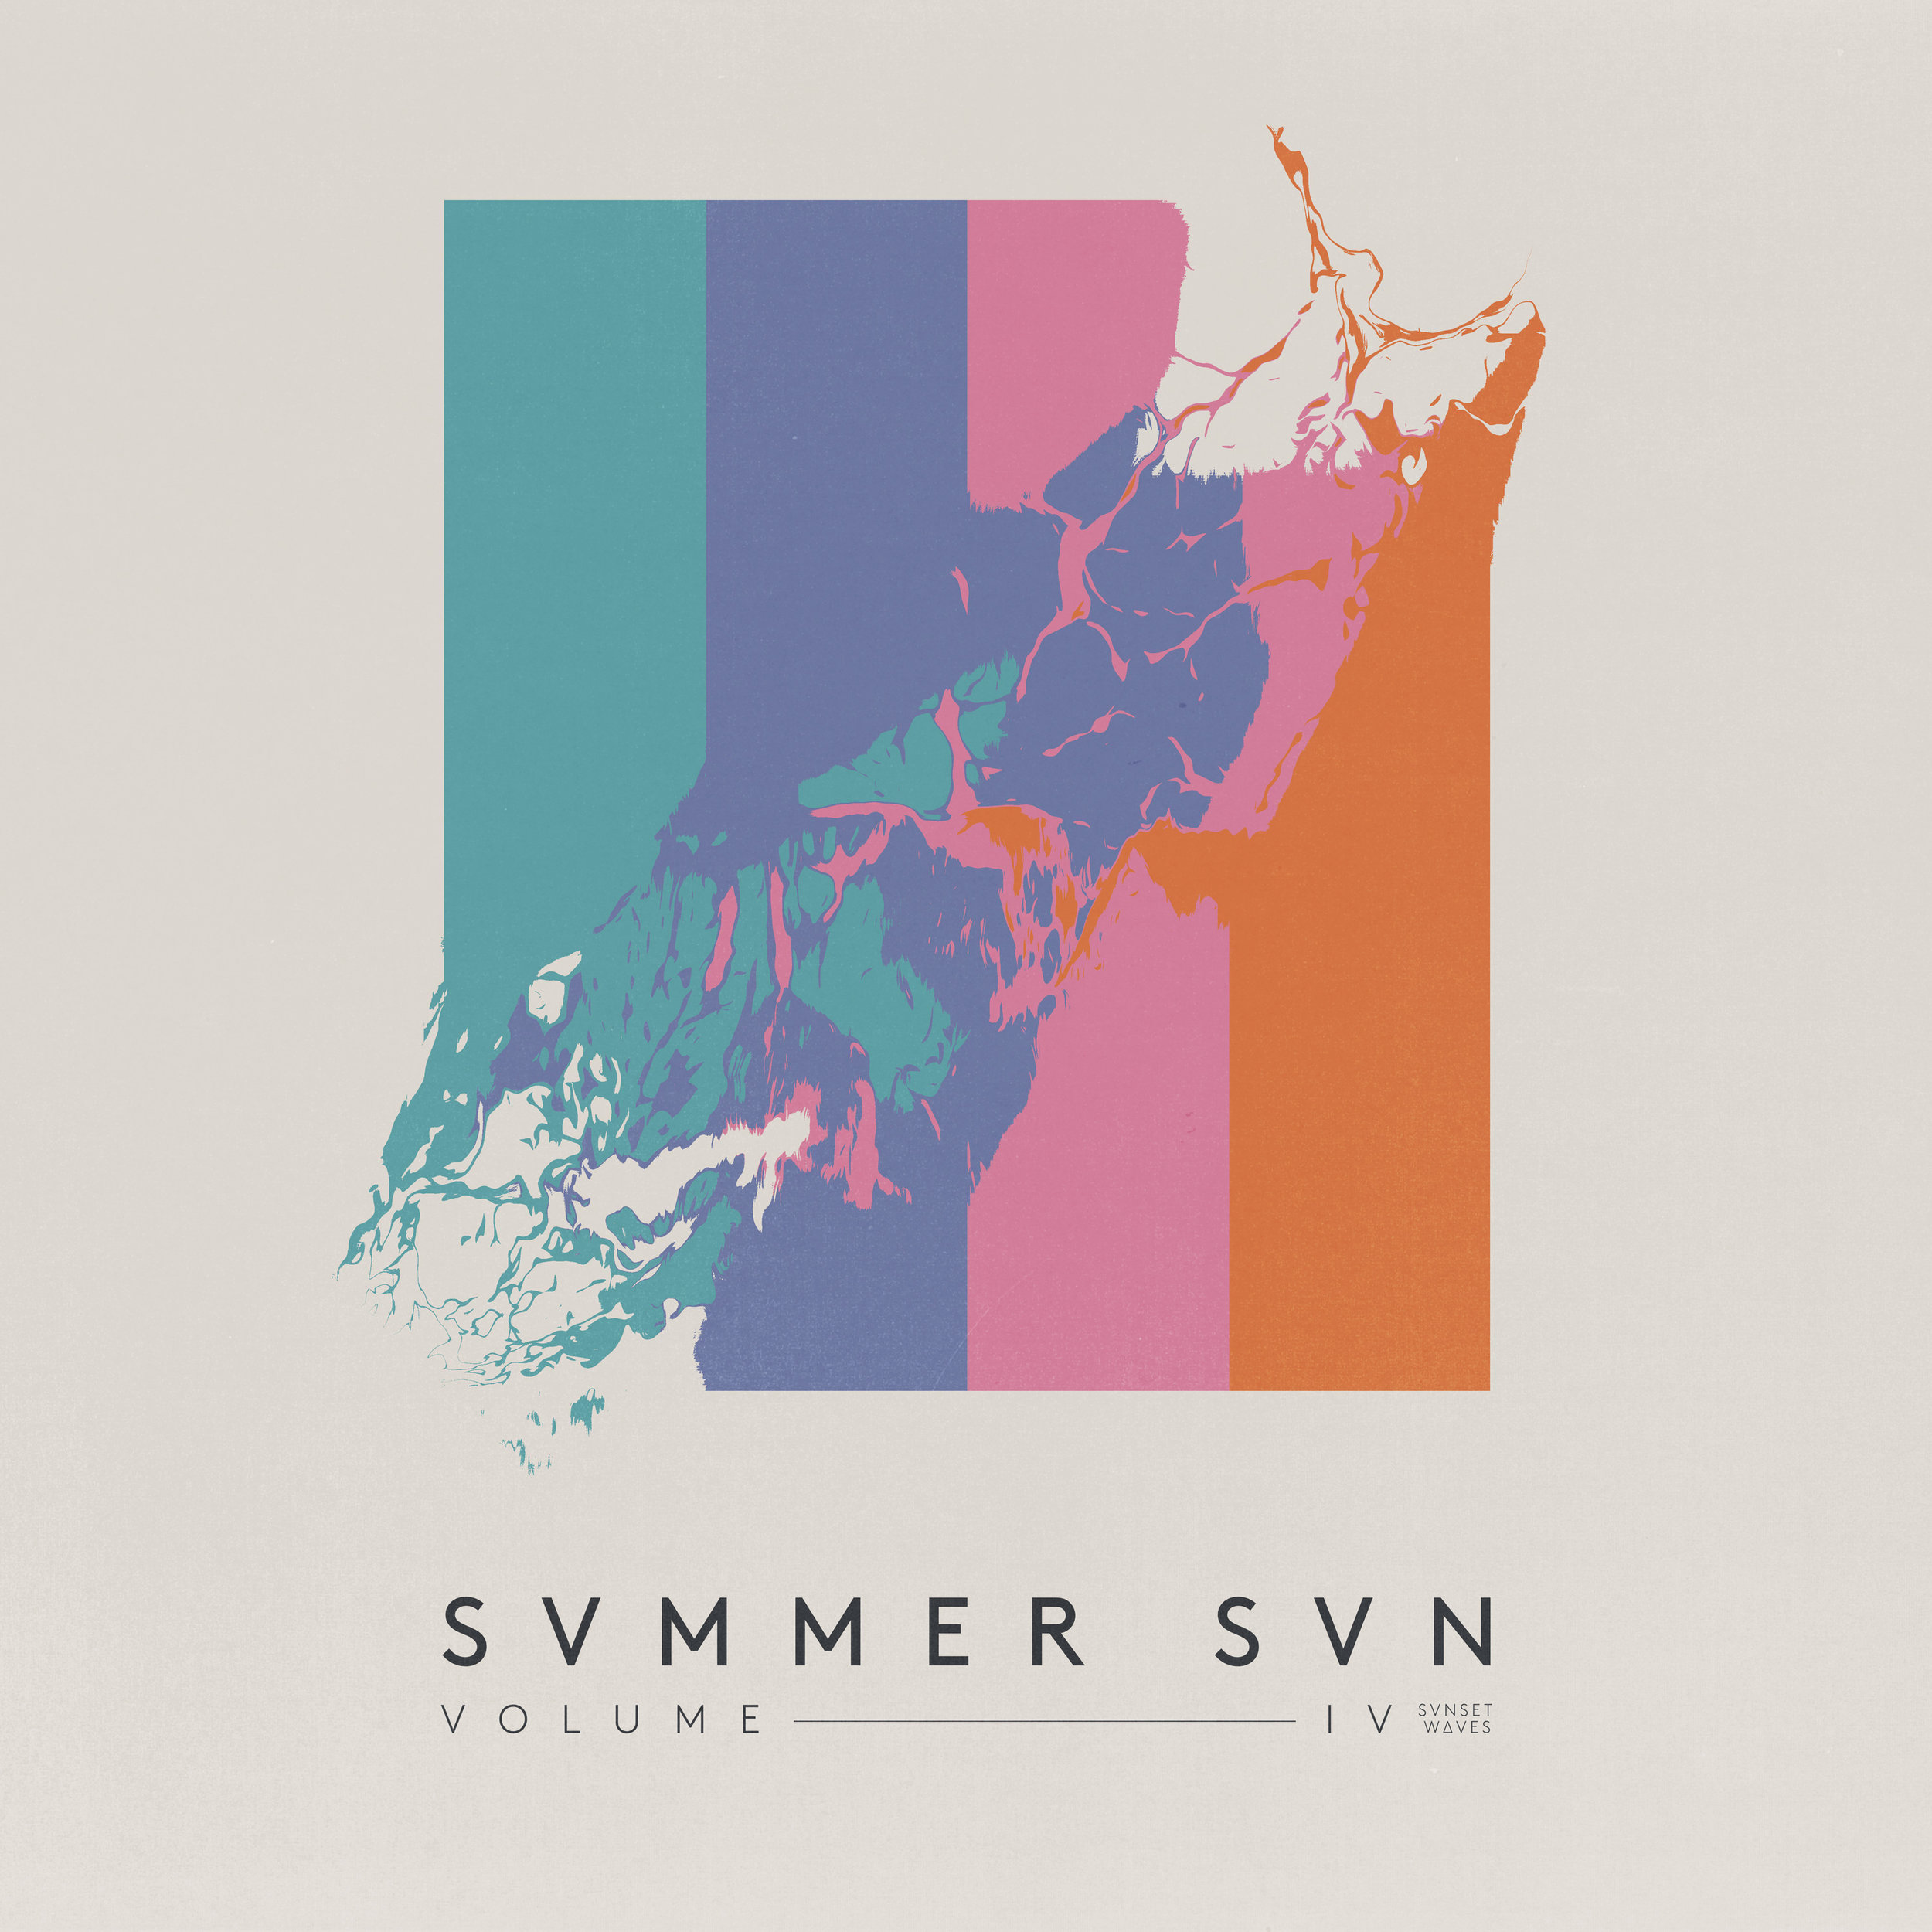 SVMMER SVN vol. 4  /  Compilation  / July 30, 2016